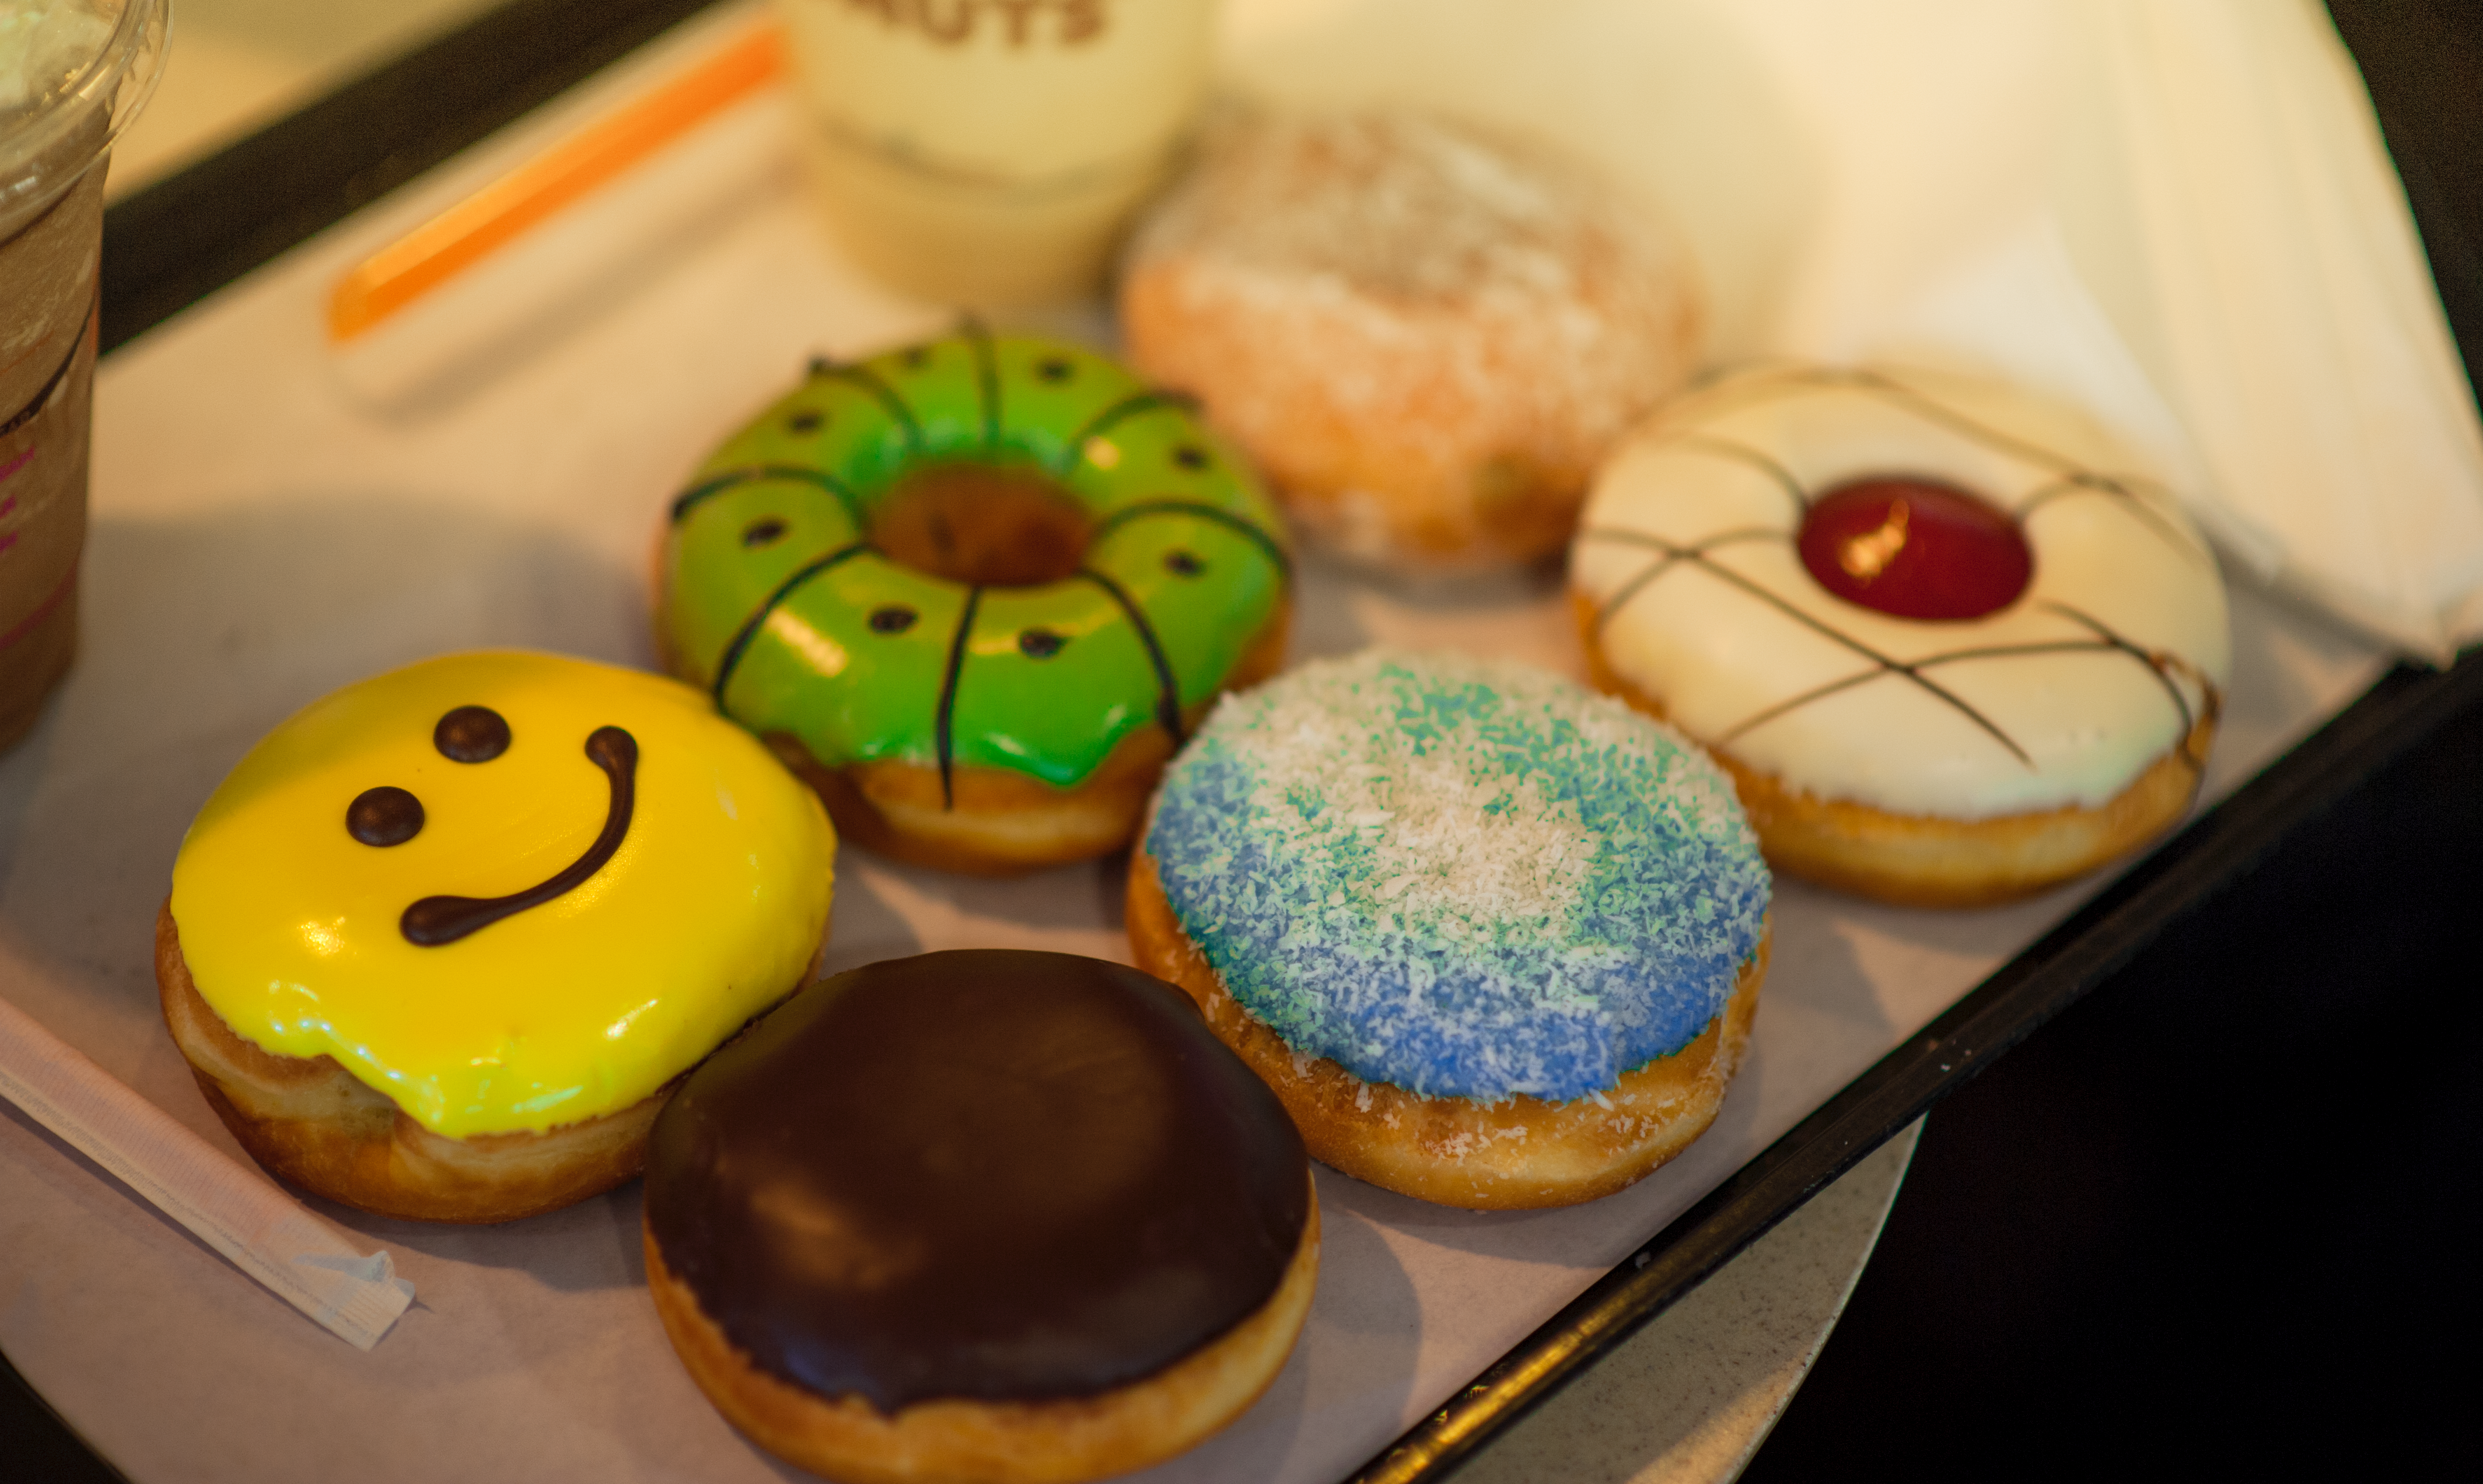 Shallow focus photography of assorted flavored donuts